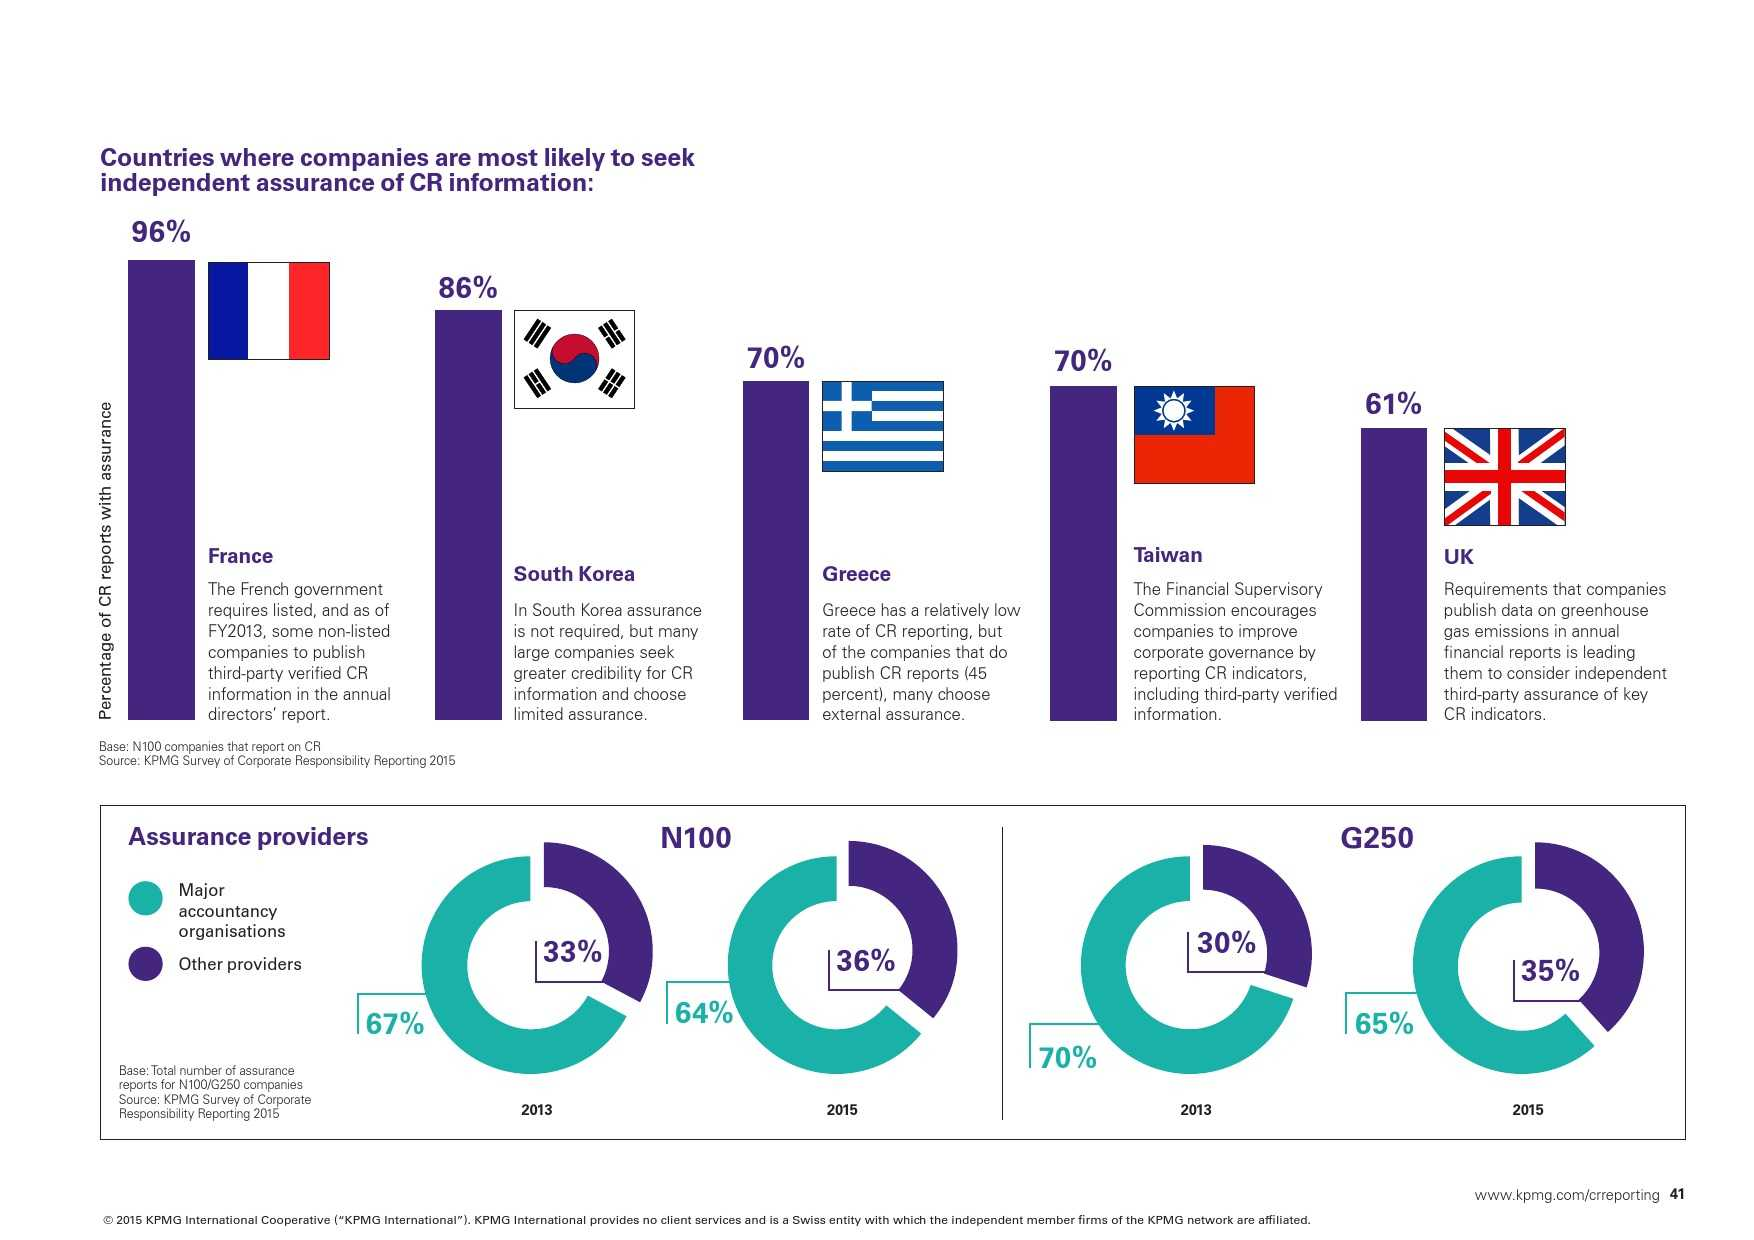 kpmg-international-survey-of-corporate-responsibility-reporting-2015_000041